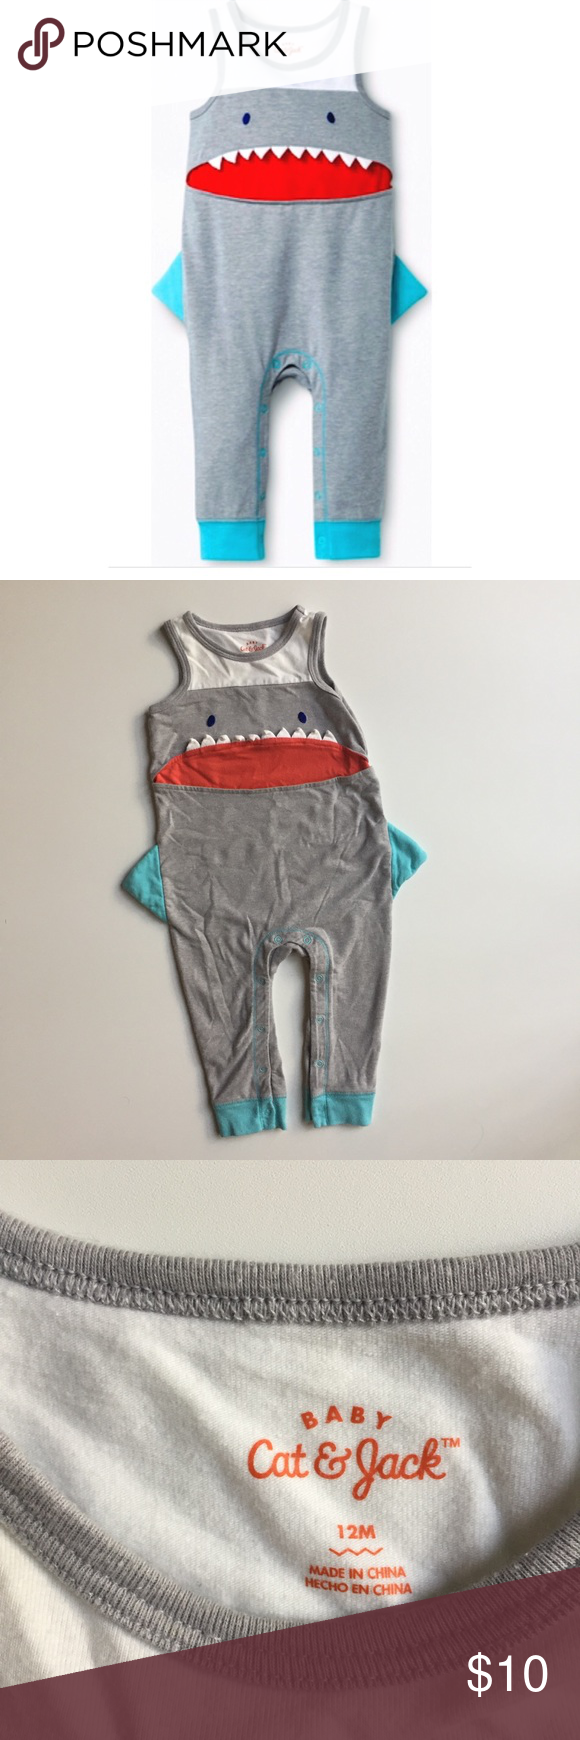 d02b95d462c0 Cat   Jack Baby Shark Romper 12 Months Adorable shark one-piece romper by  Cat